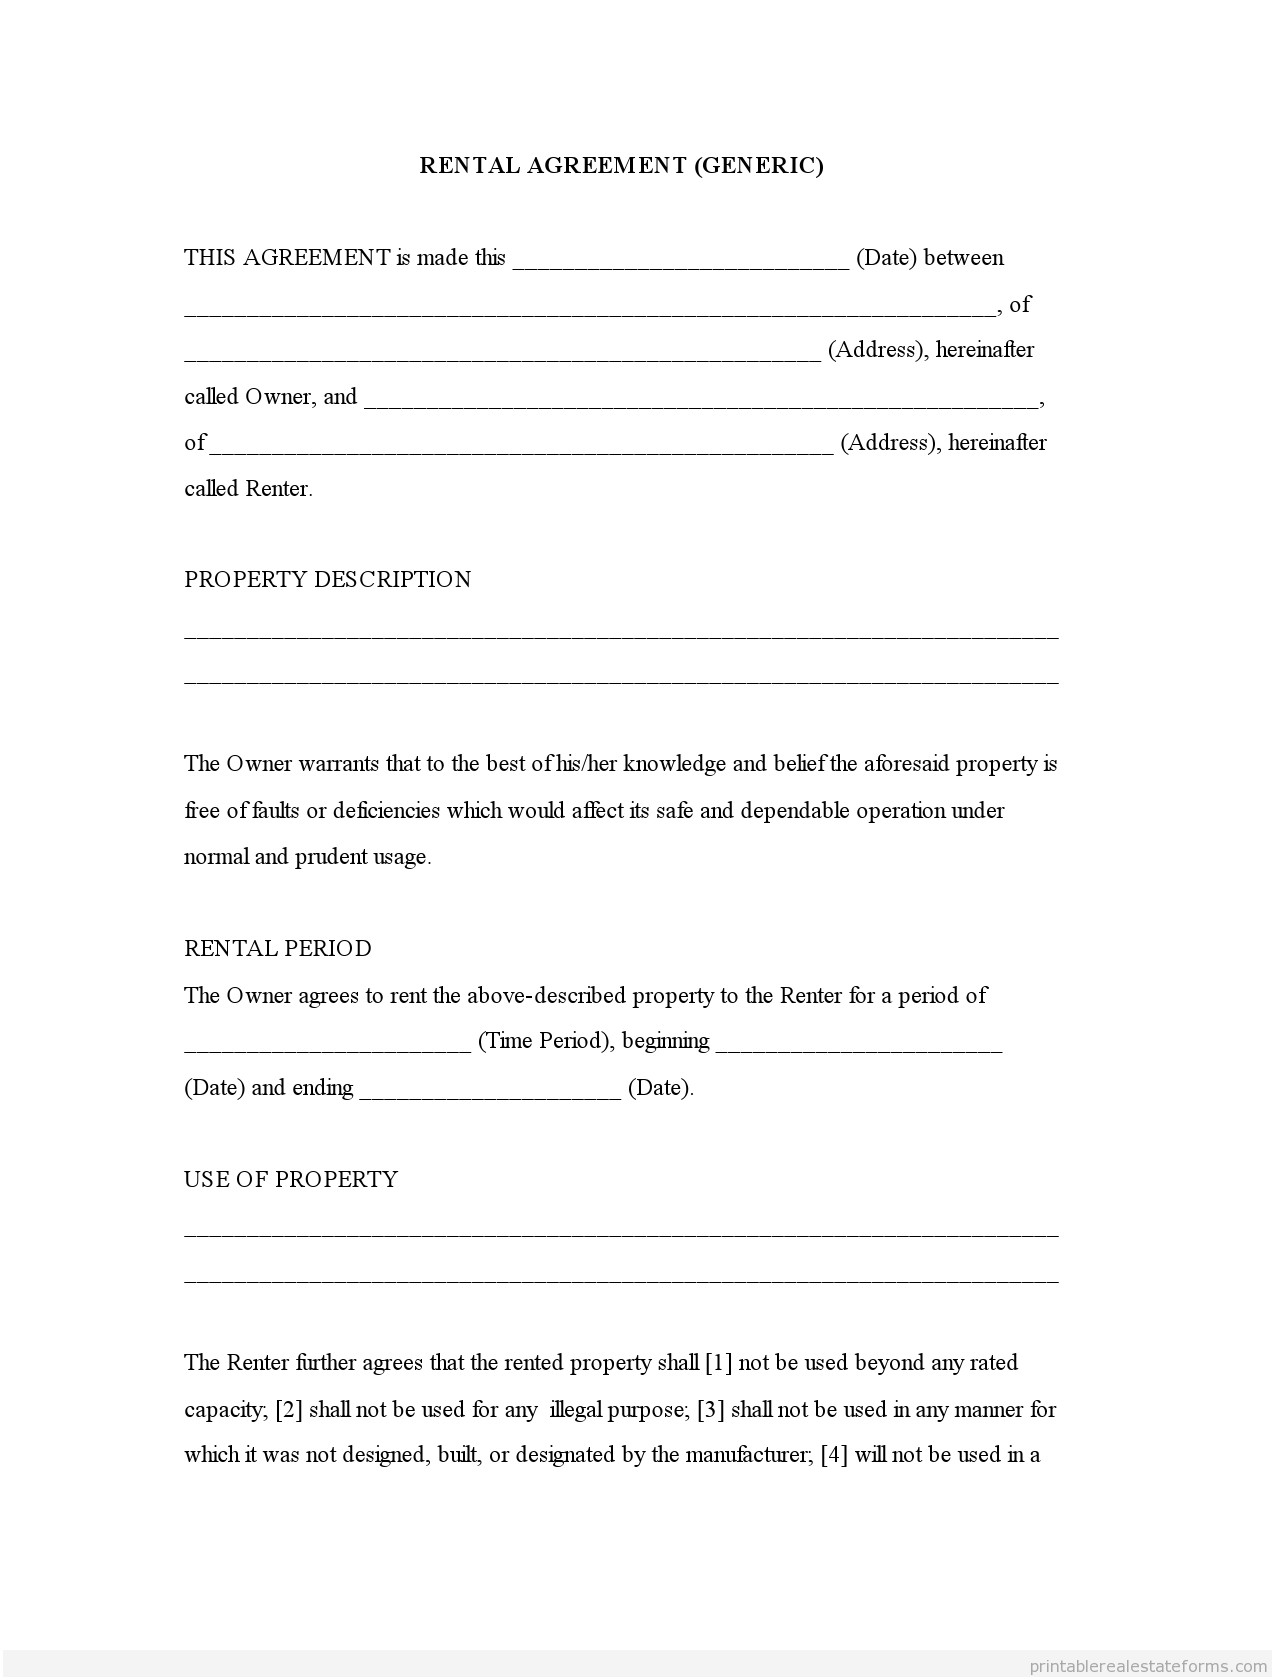 Free Printable Rental Lease Agreement Forms